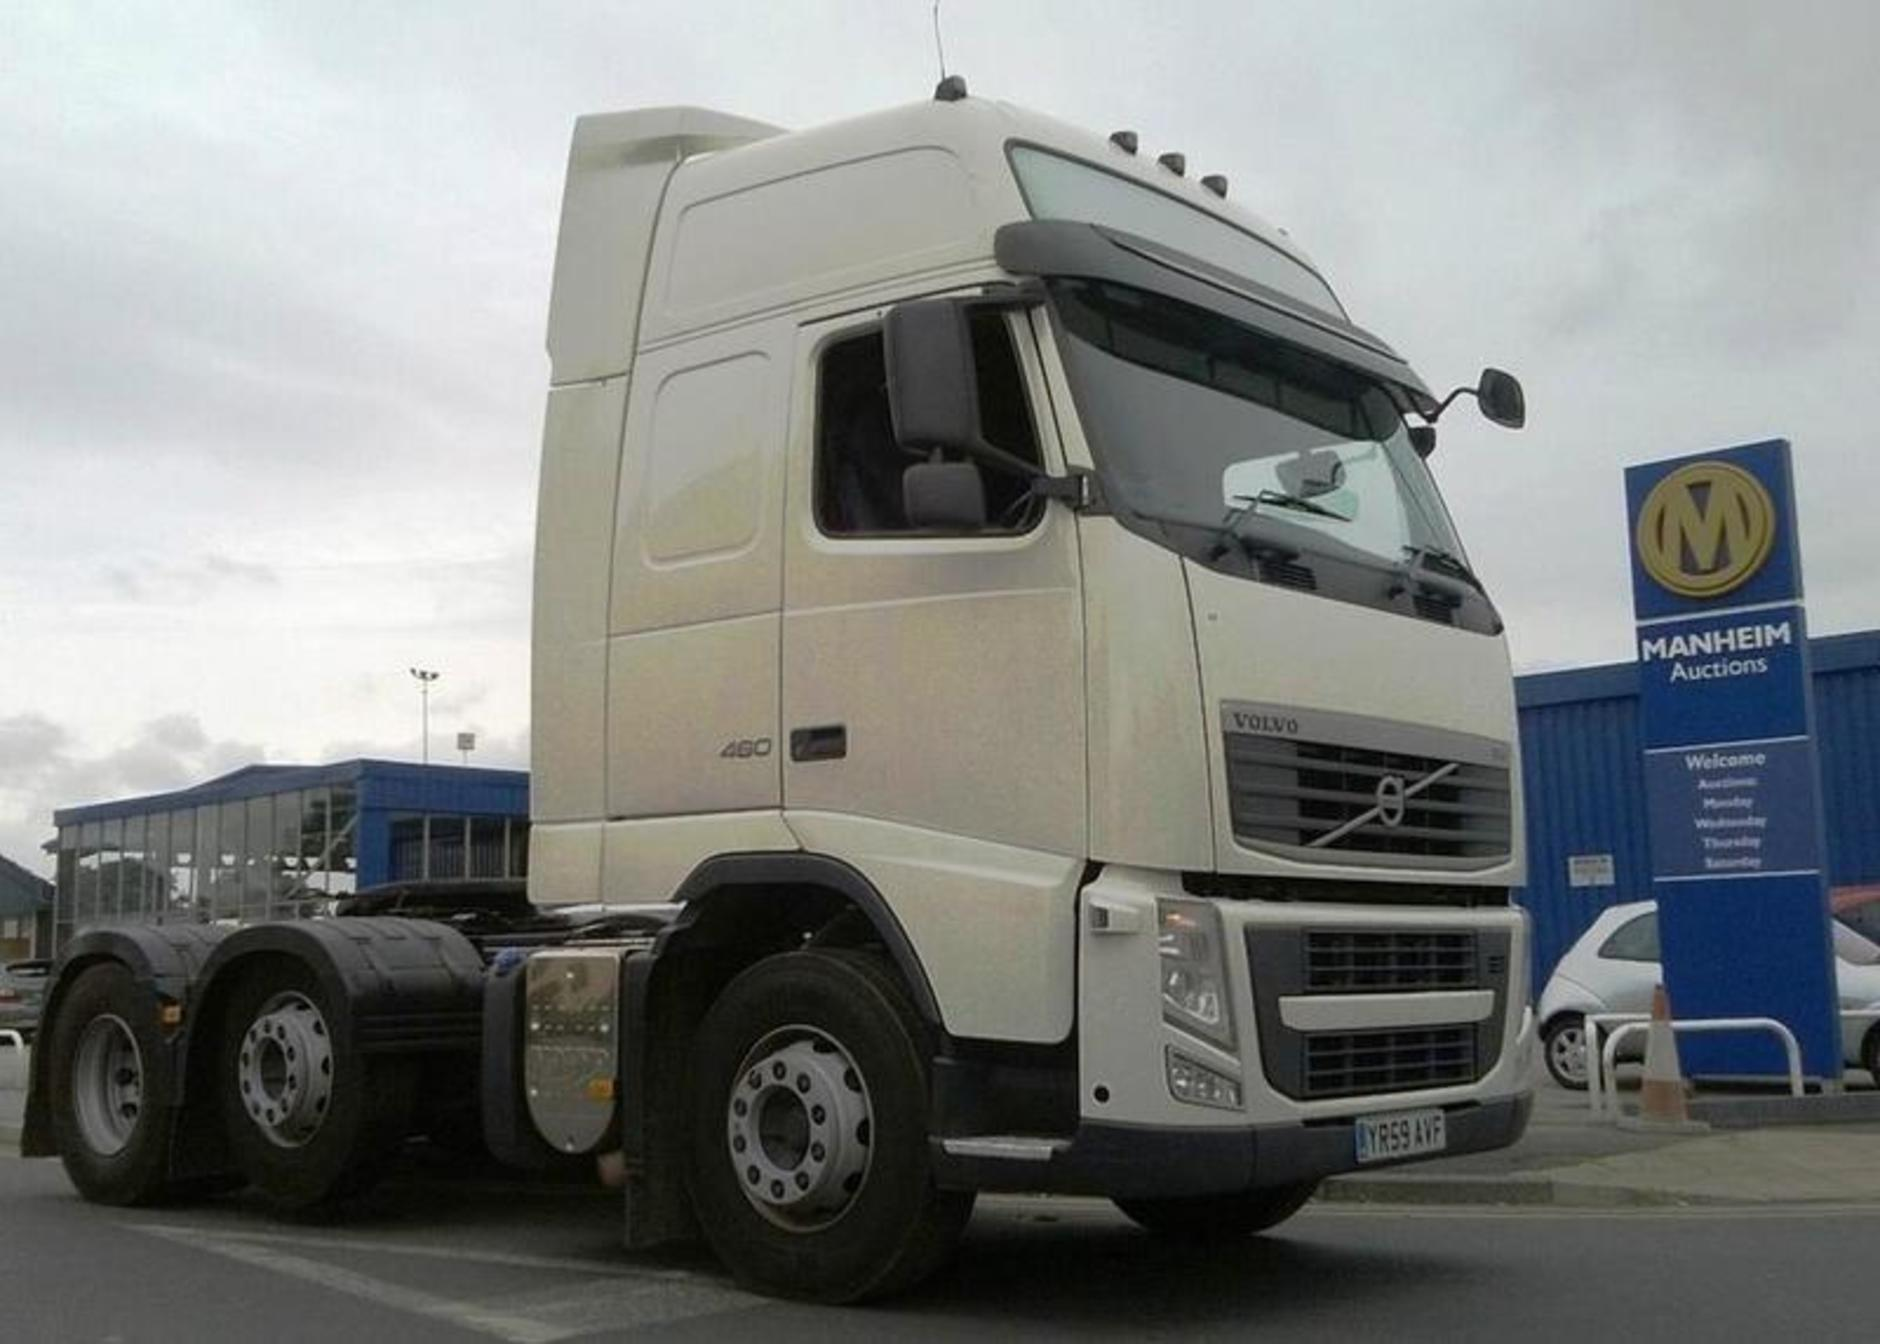 trucks updated commercial results image d for sell truck search volvo description vans commercials sale h used